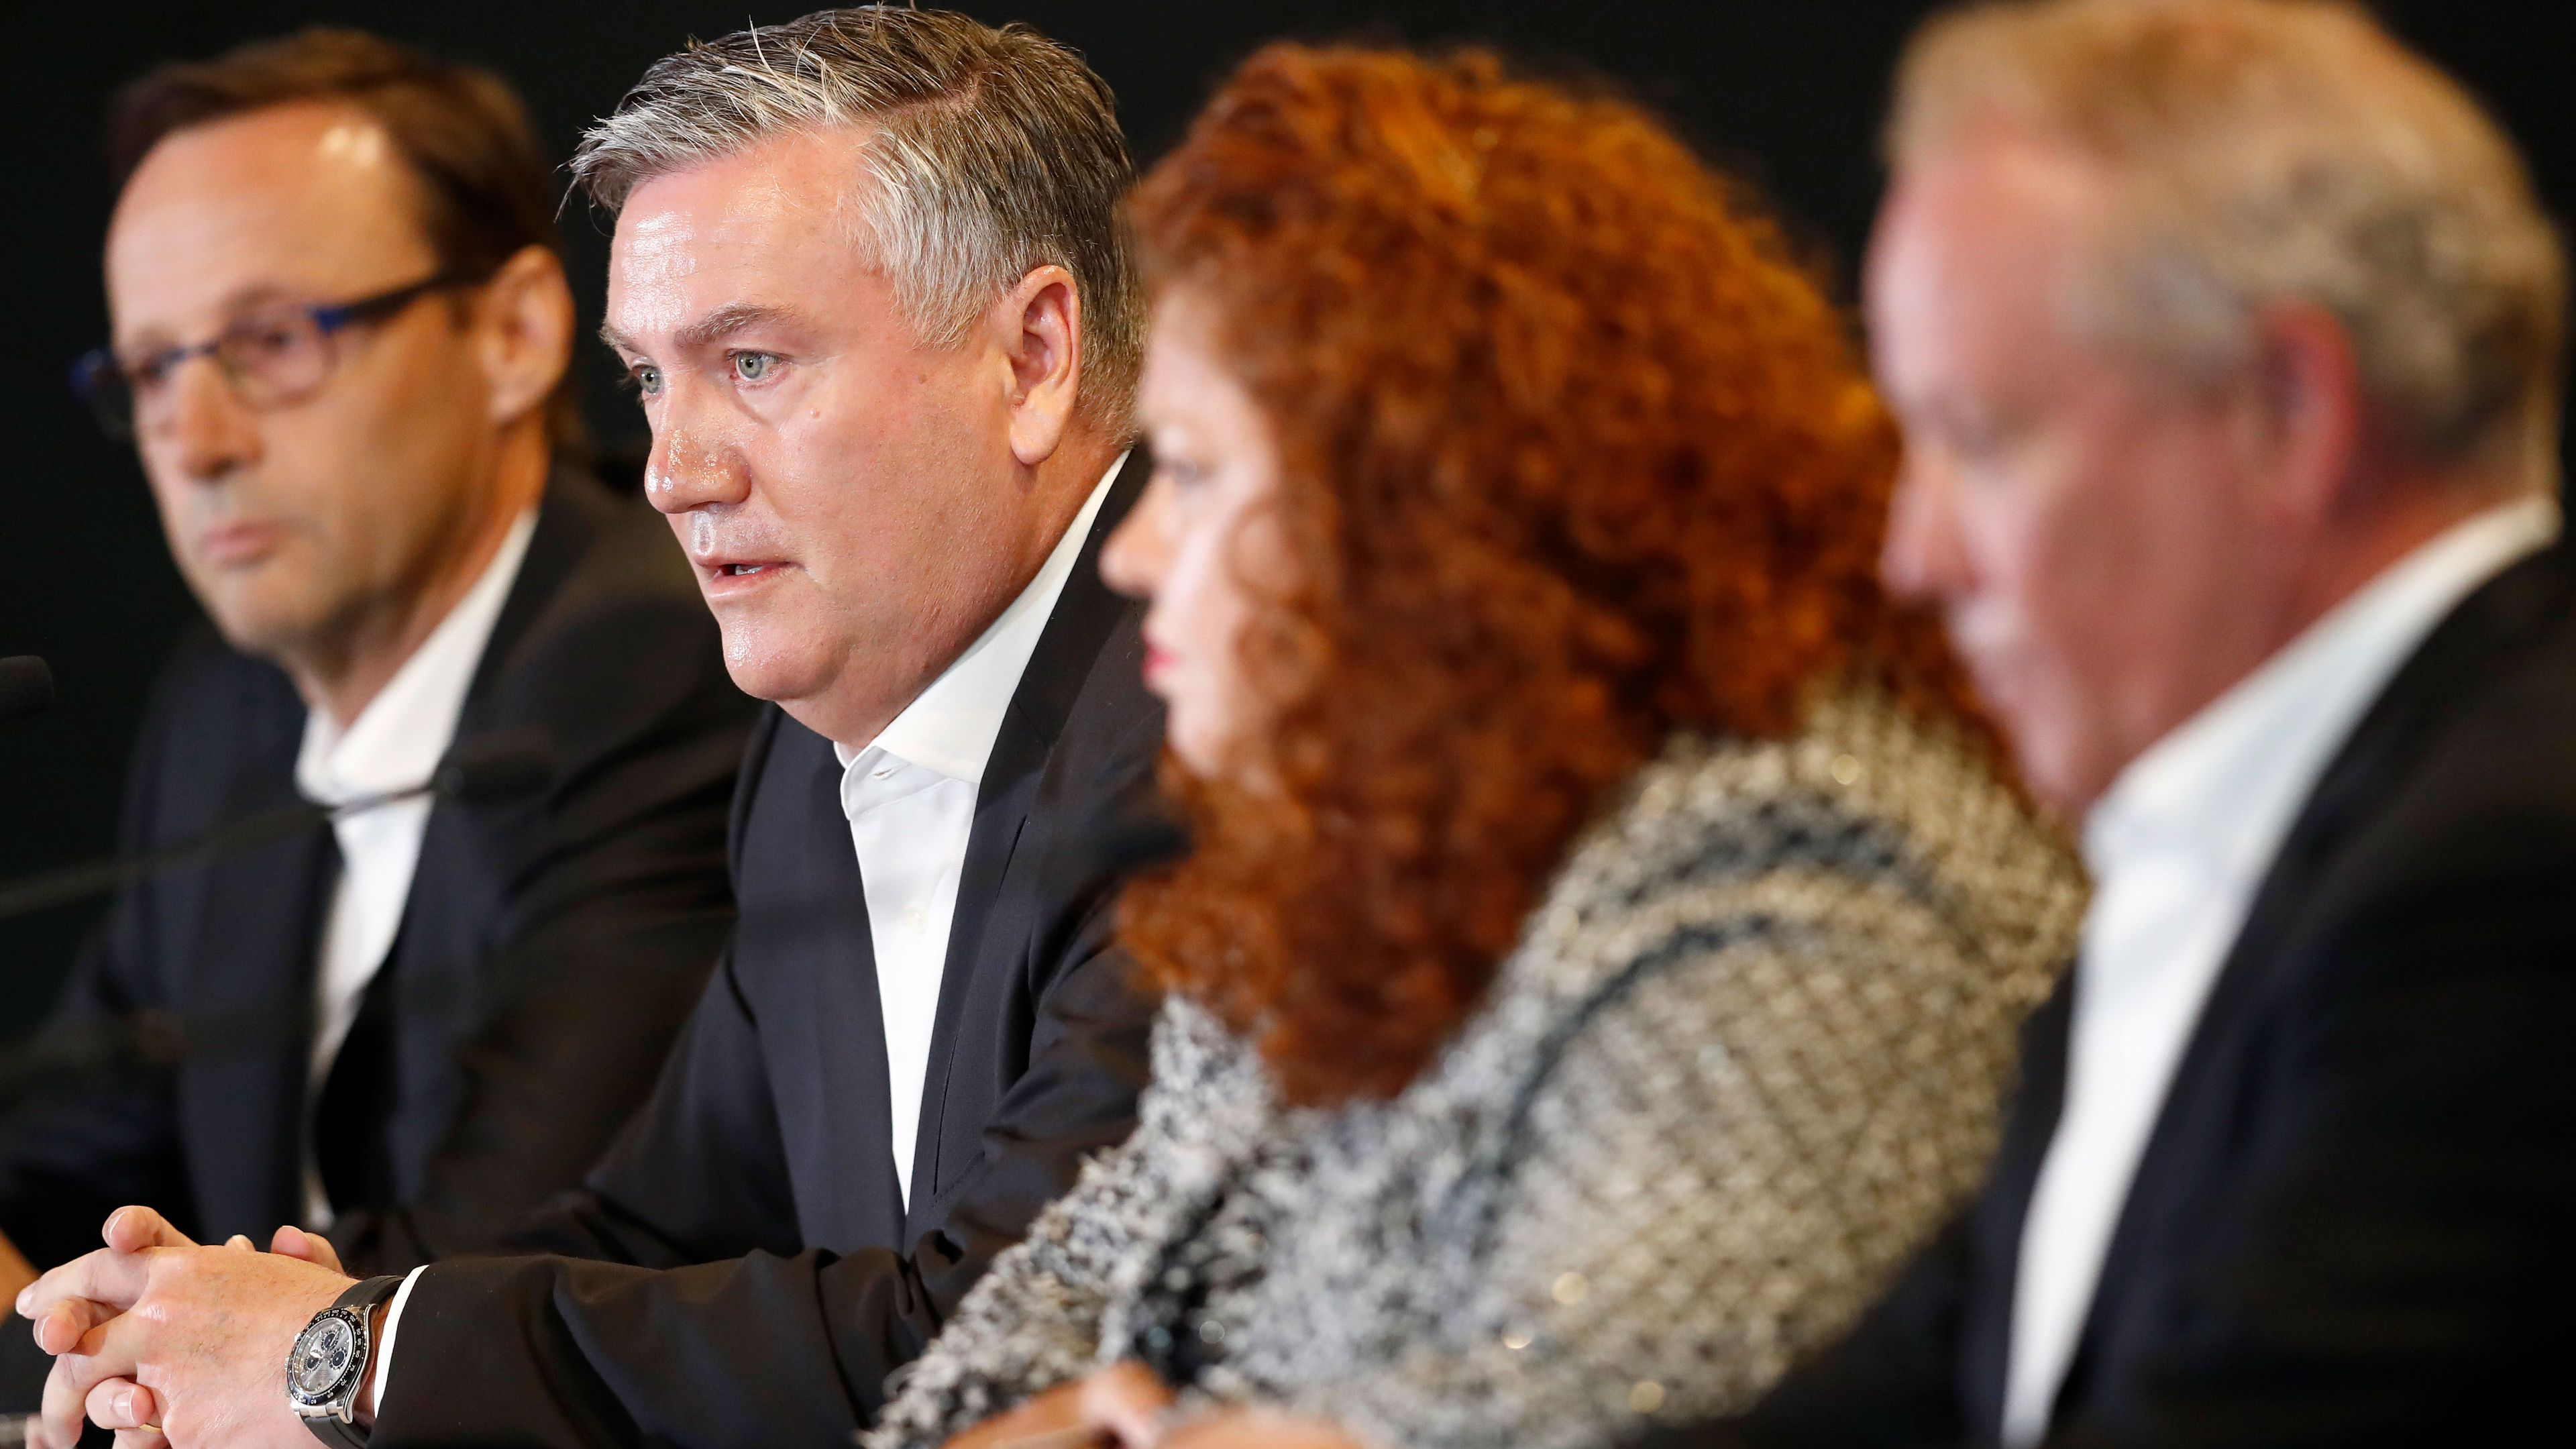 Collingwood powerbrokers slammed for 'spin' in press conference addressing racism report